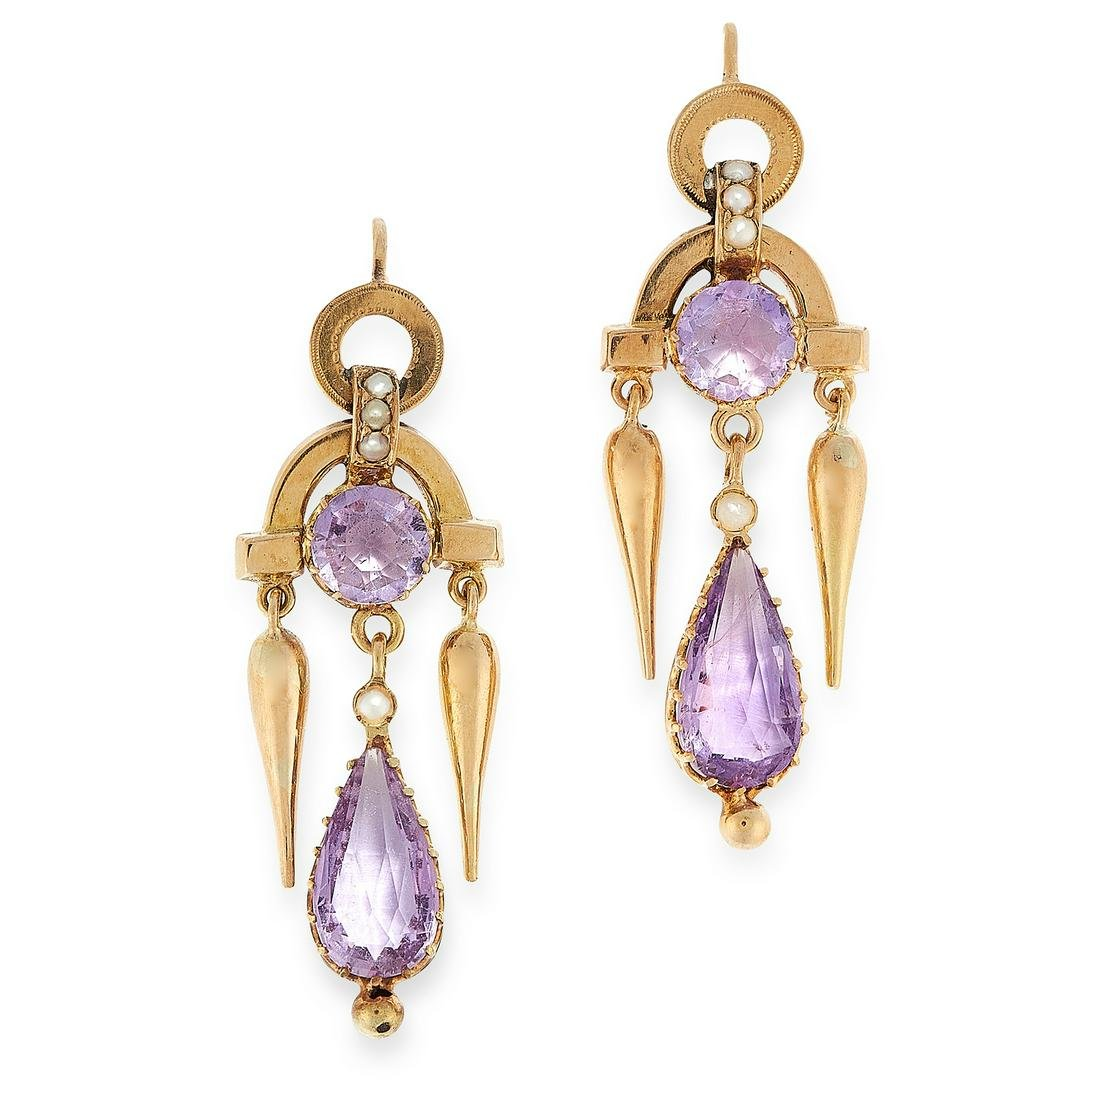 A PAIR OF ANTIQUE AMETHYST AND PEARL EARRINGS, 19TH